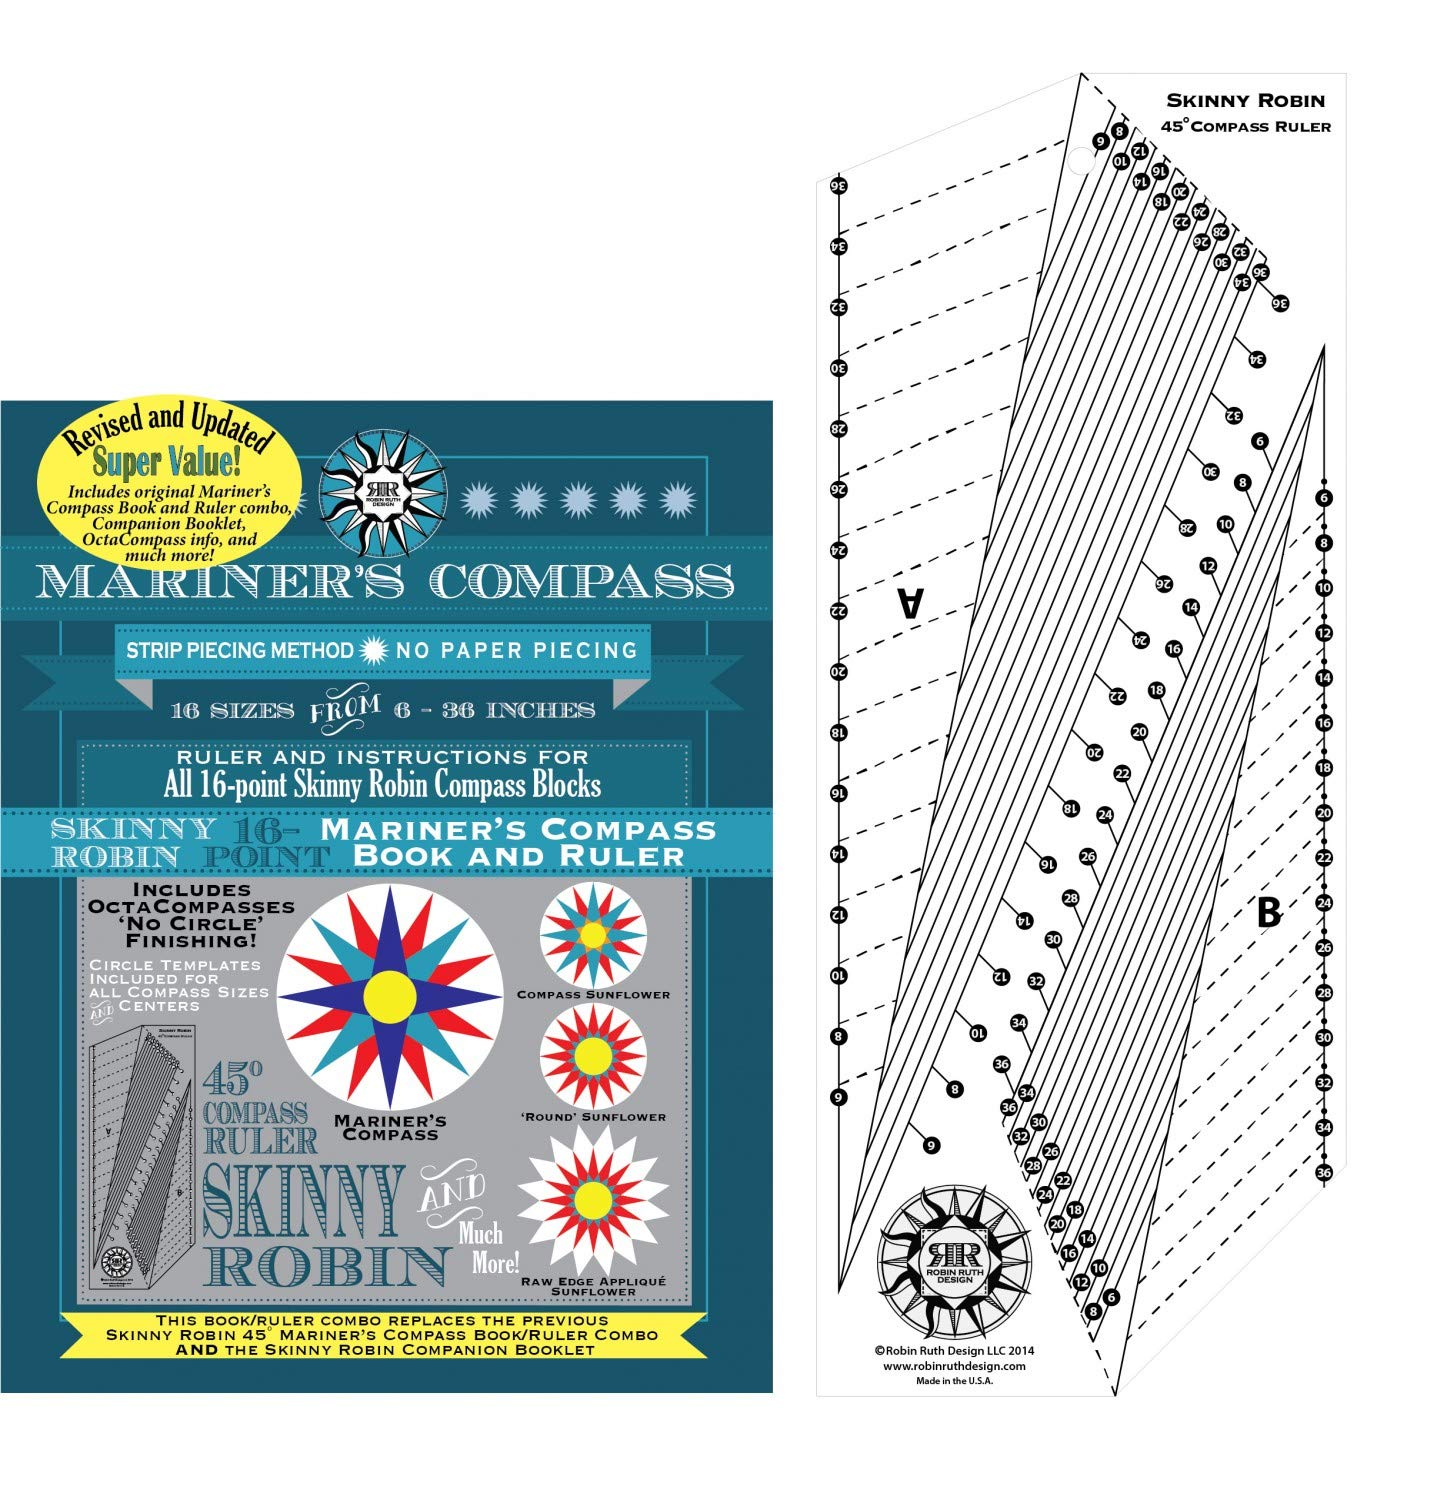 Mariner's Compass Skinny Robin Ruler and Instruction Manual for Quilt Patterns - Revised and Updated for 2019! by Robin Ruth Designs